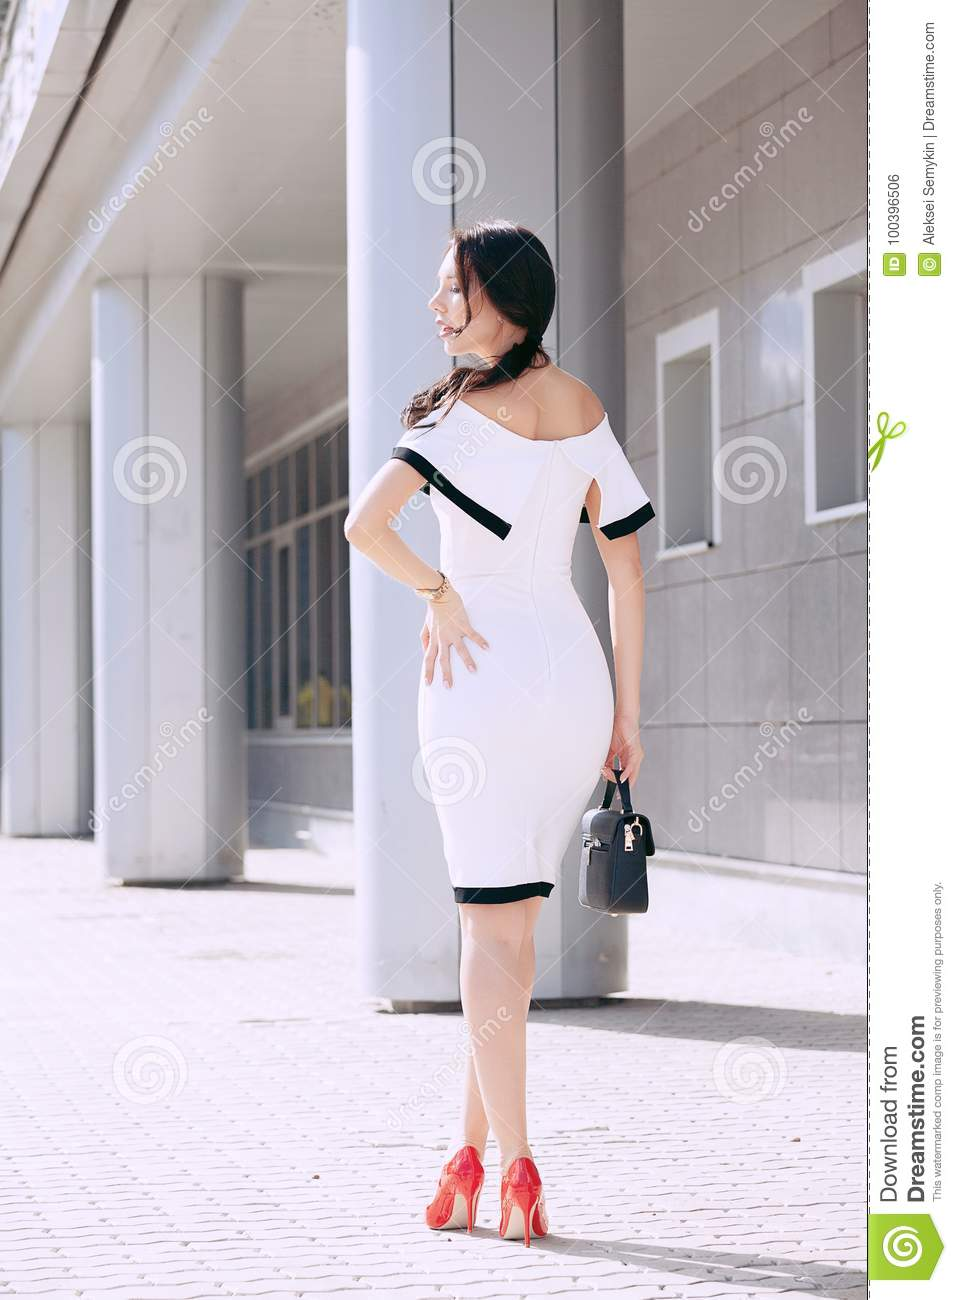 bc902790565 Young Beautiful Stylish Girl In White Dress And Black Bag Walking ...